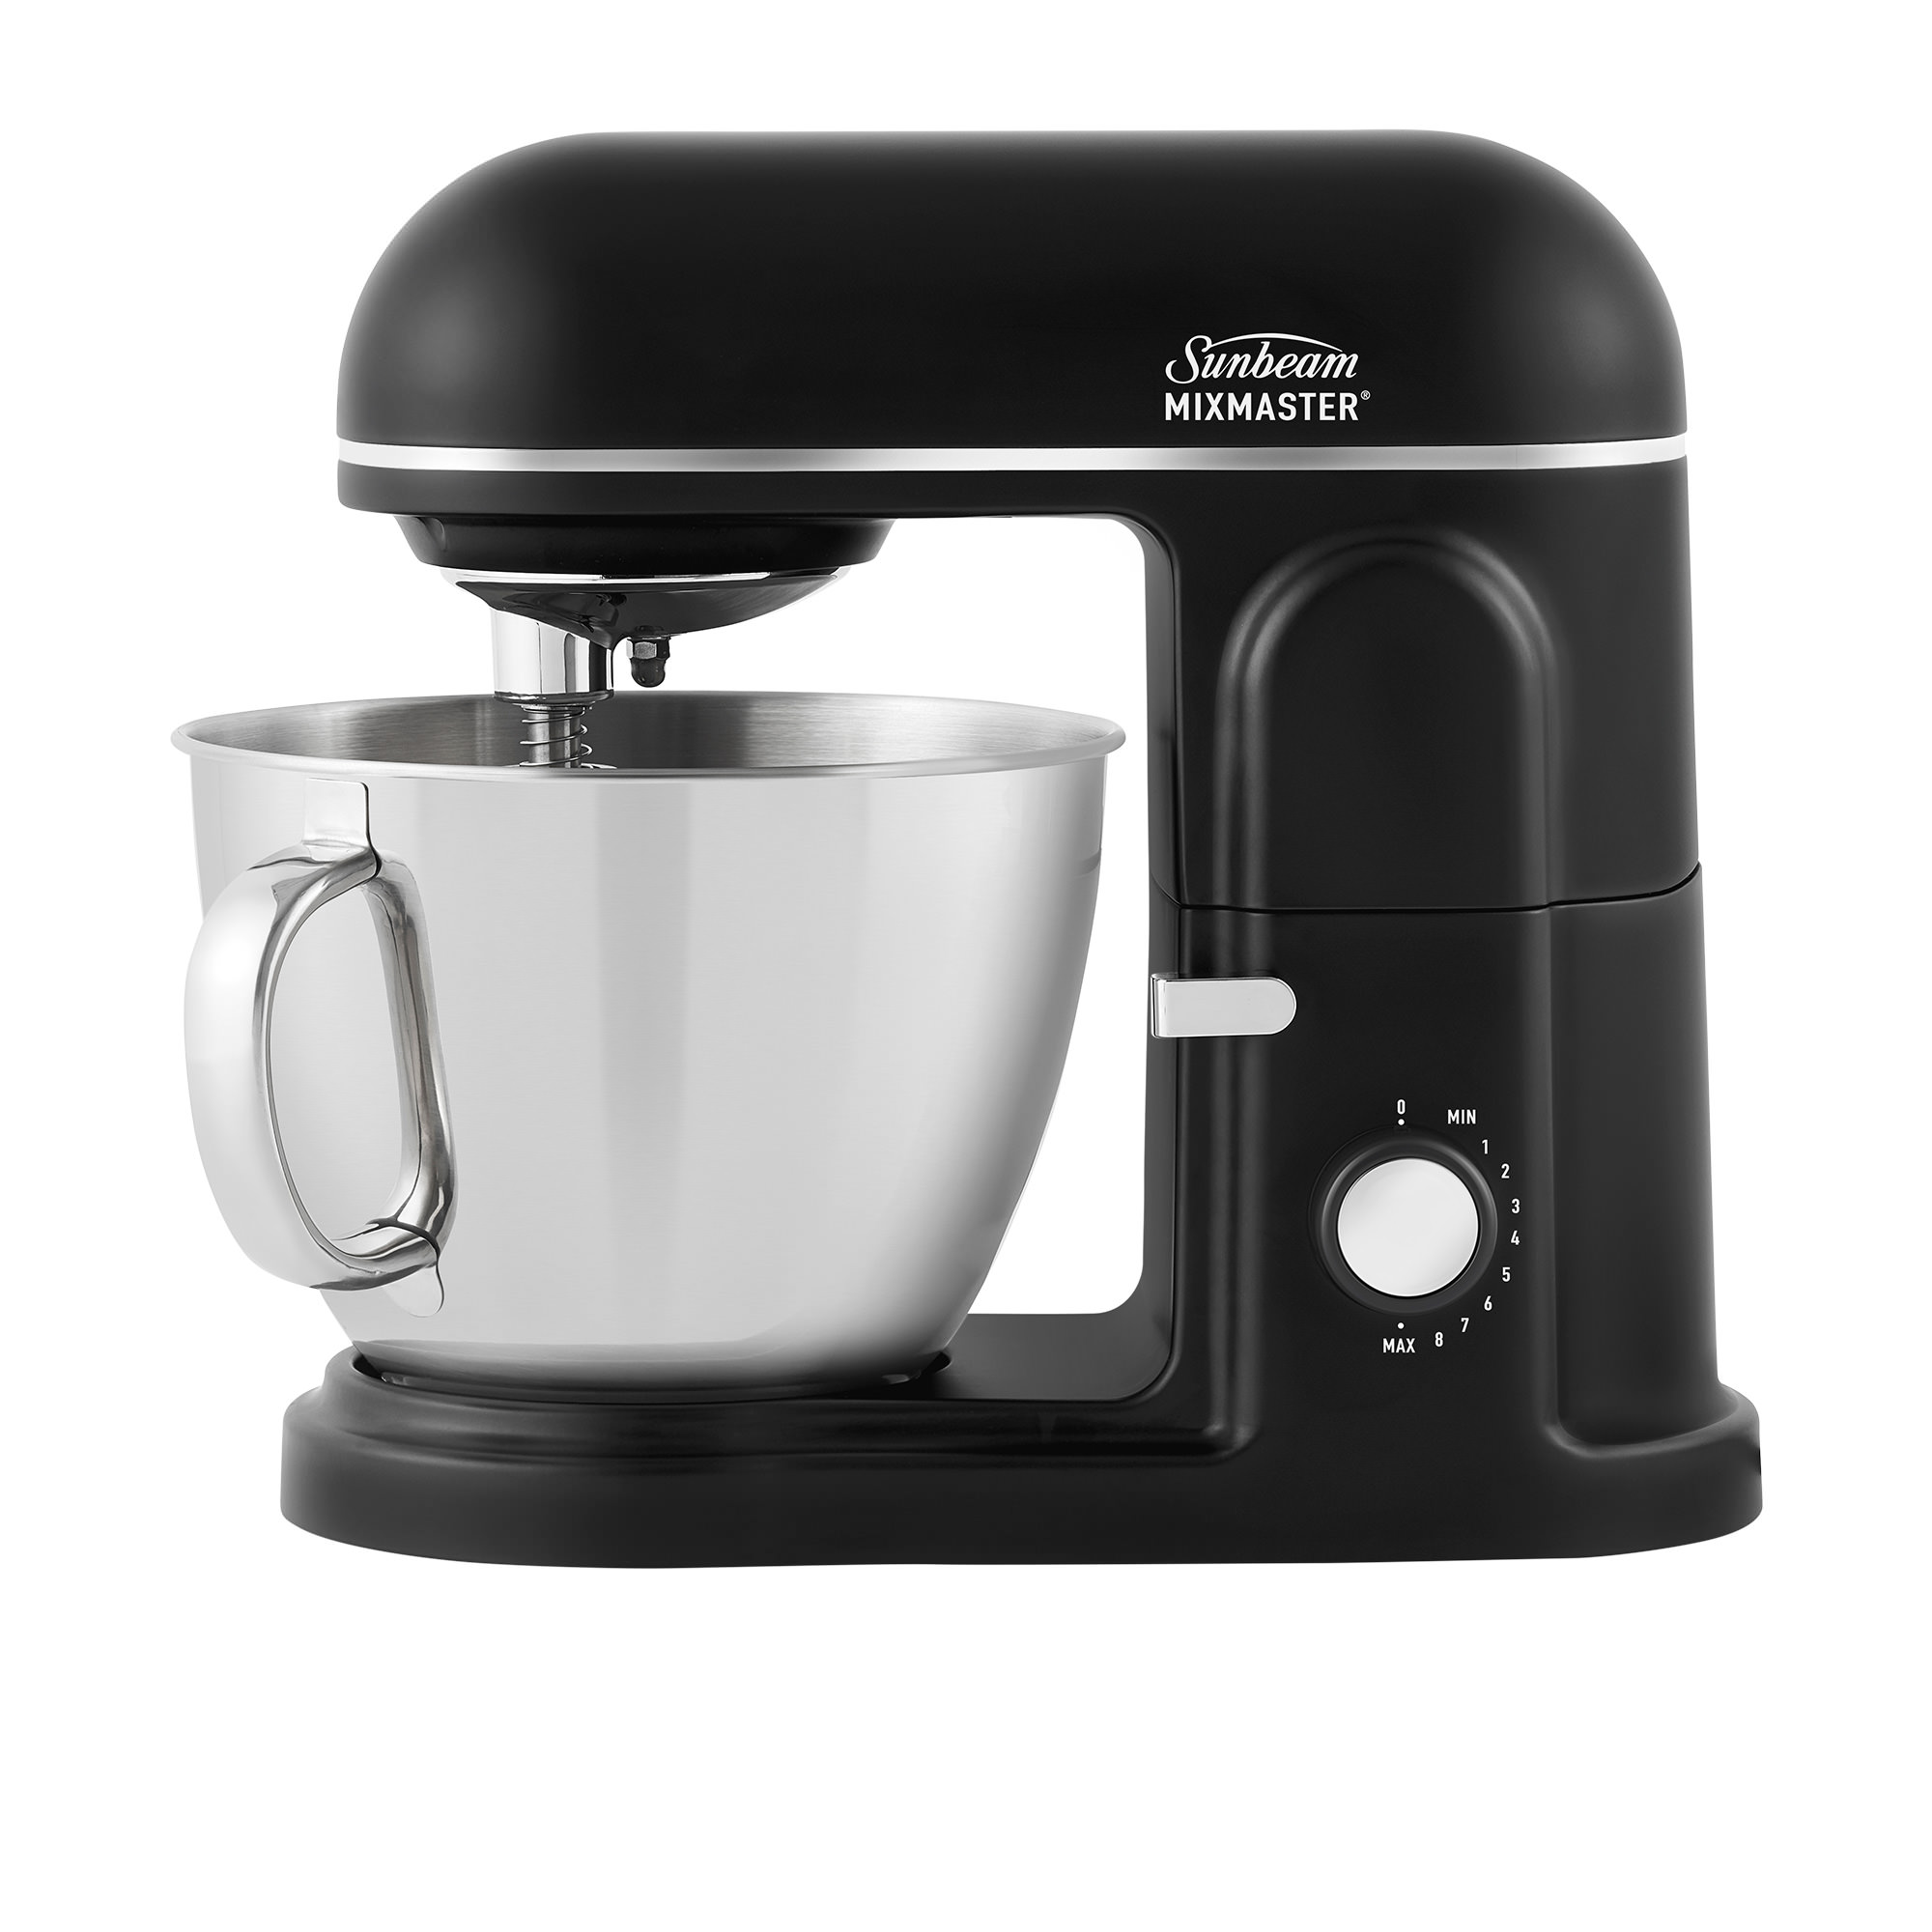 Sunbeam Mixmaster The Master One Stand Mixer Dark Canyon